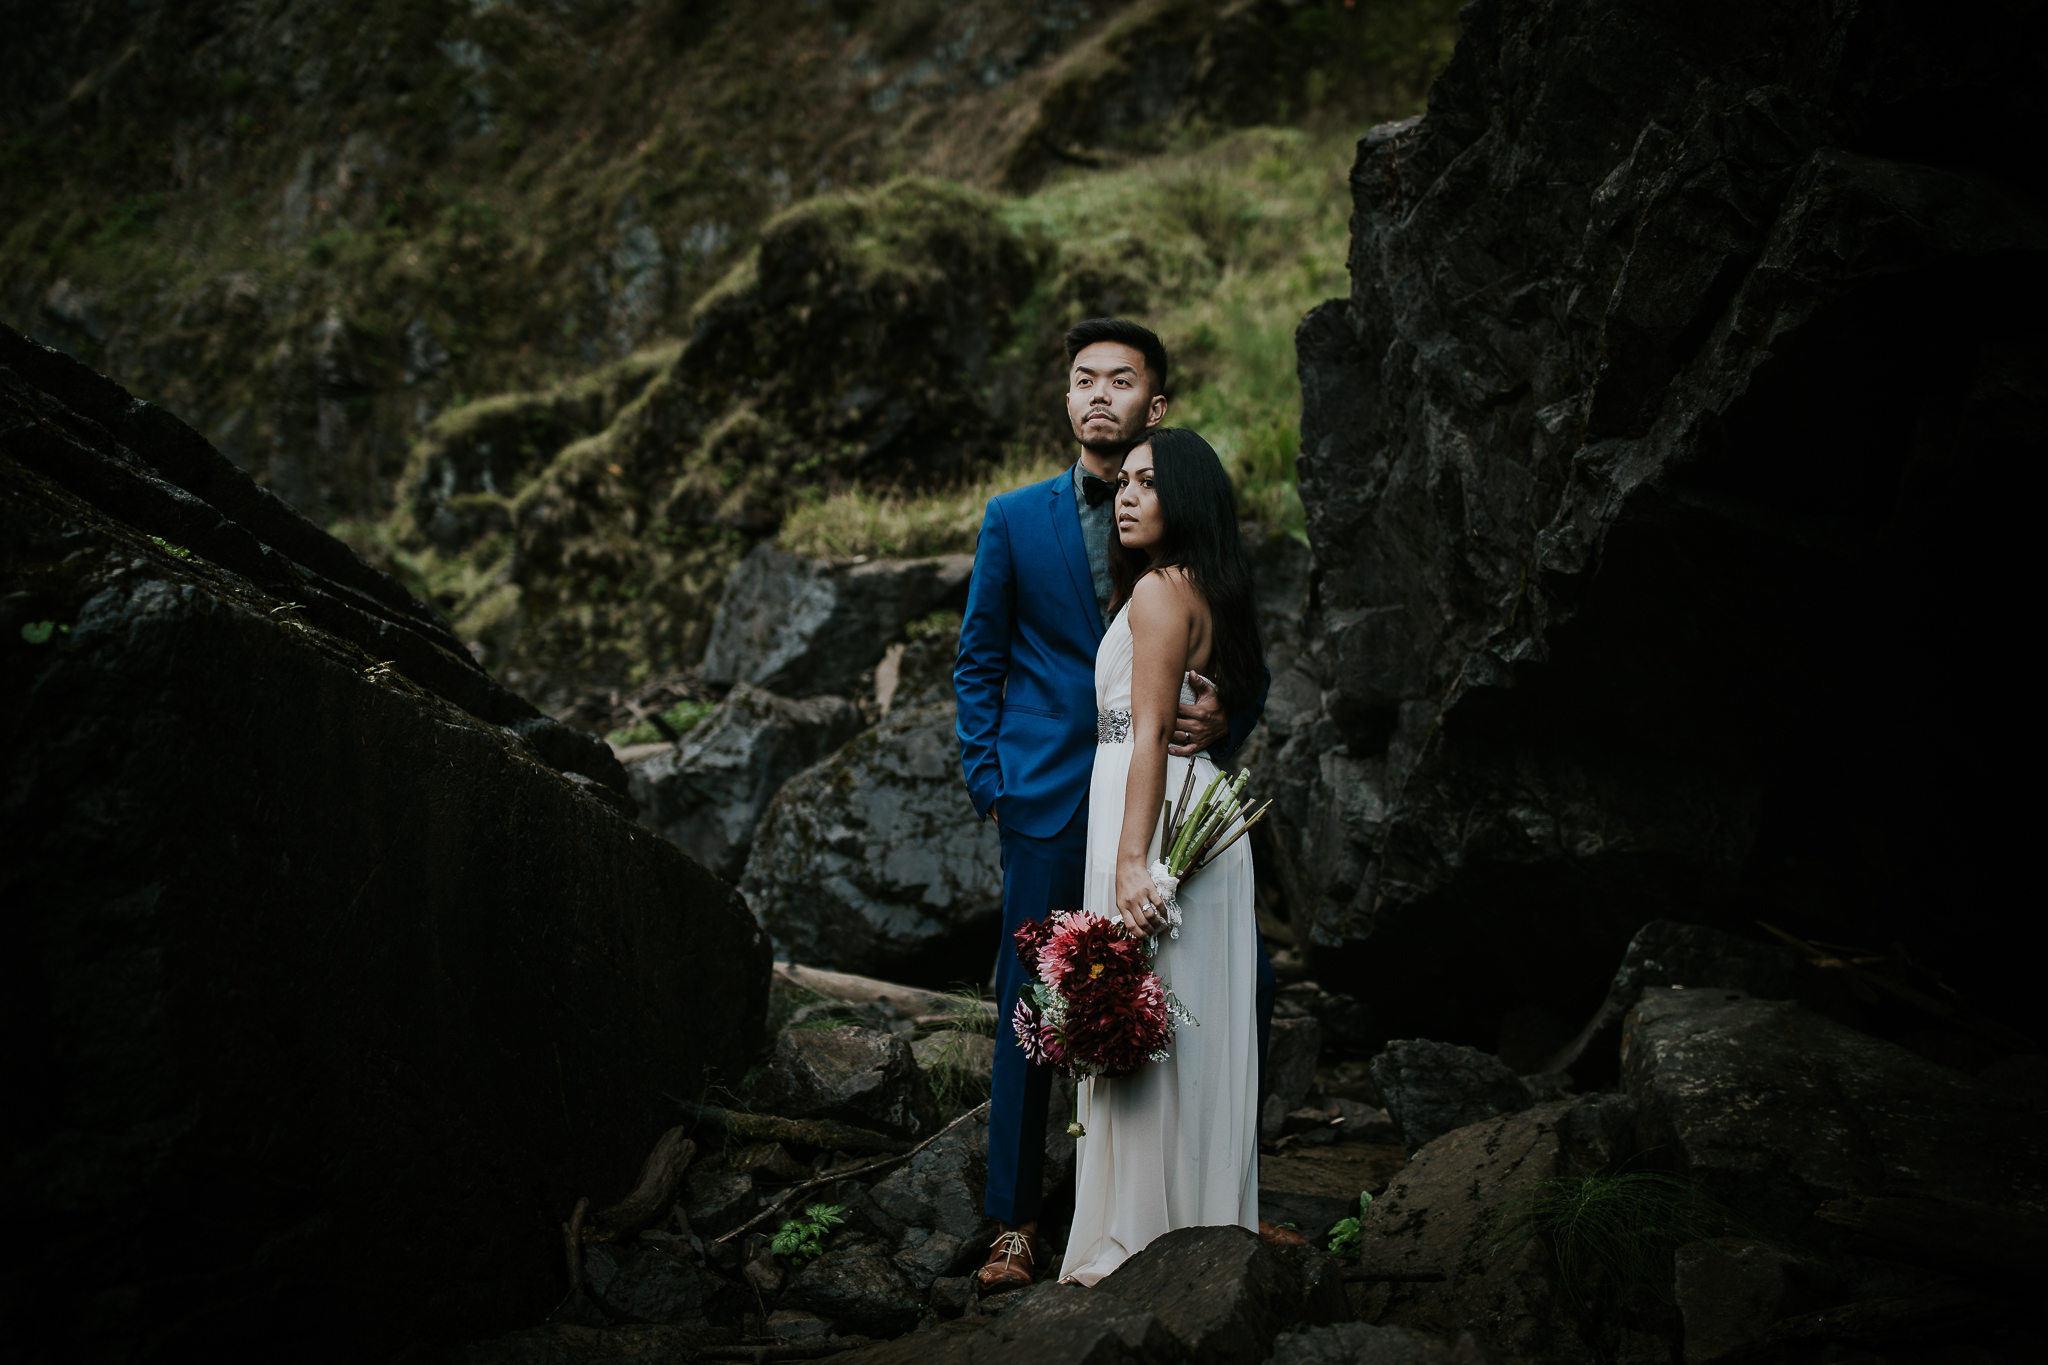 Bride and groom looking majestically out at Snoqualmie falls during elopement